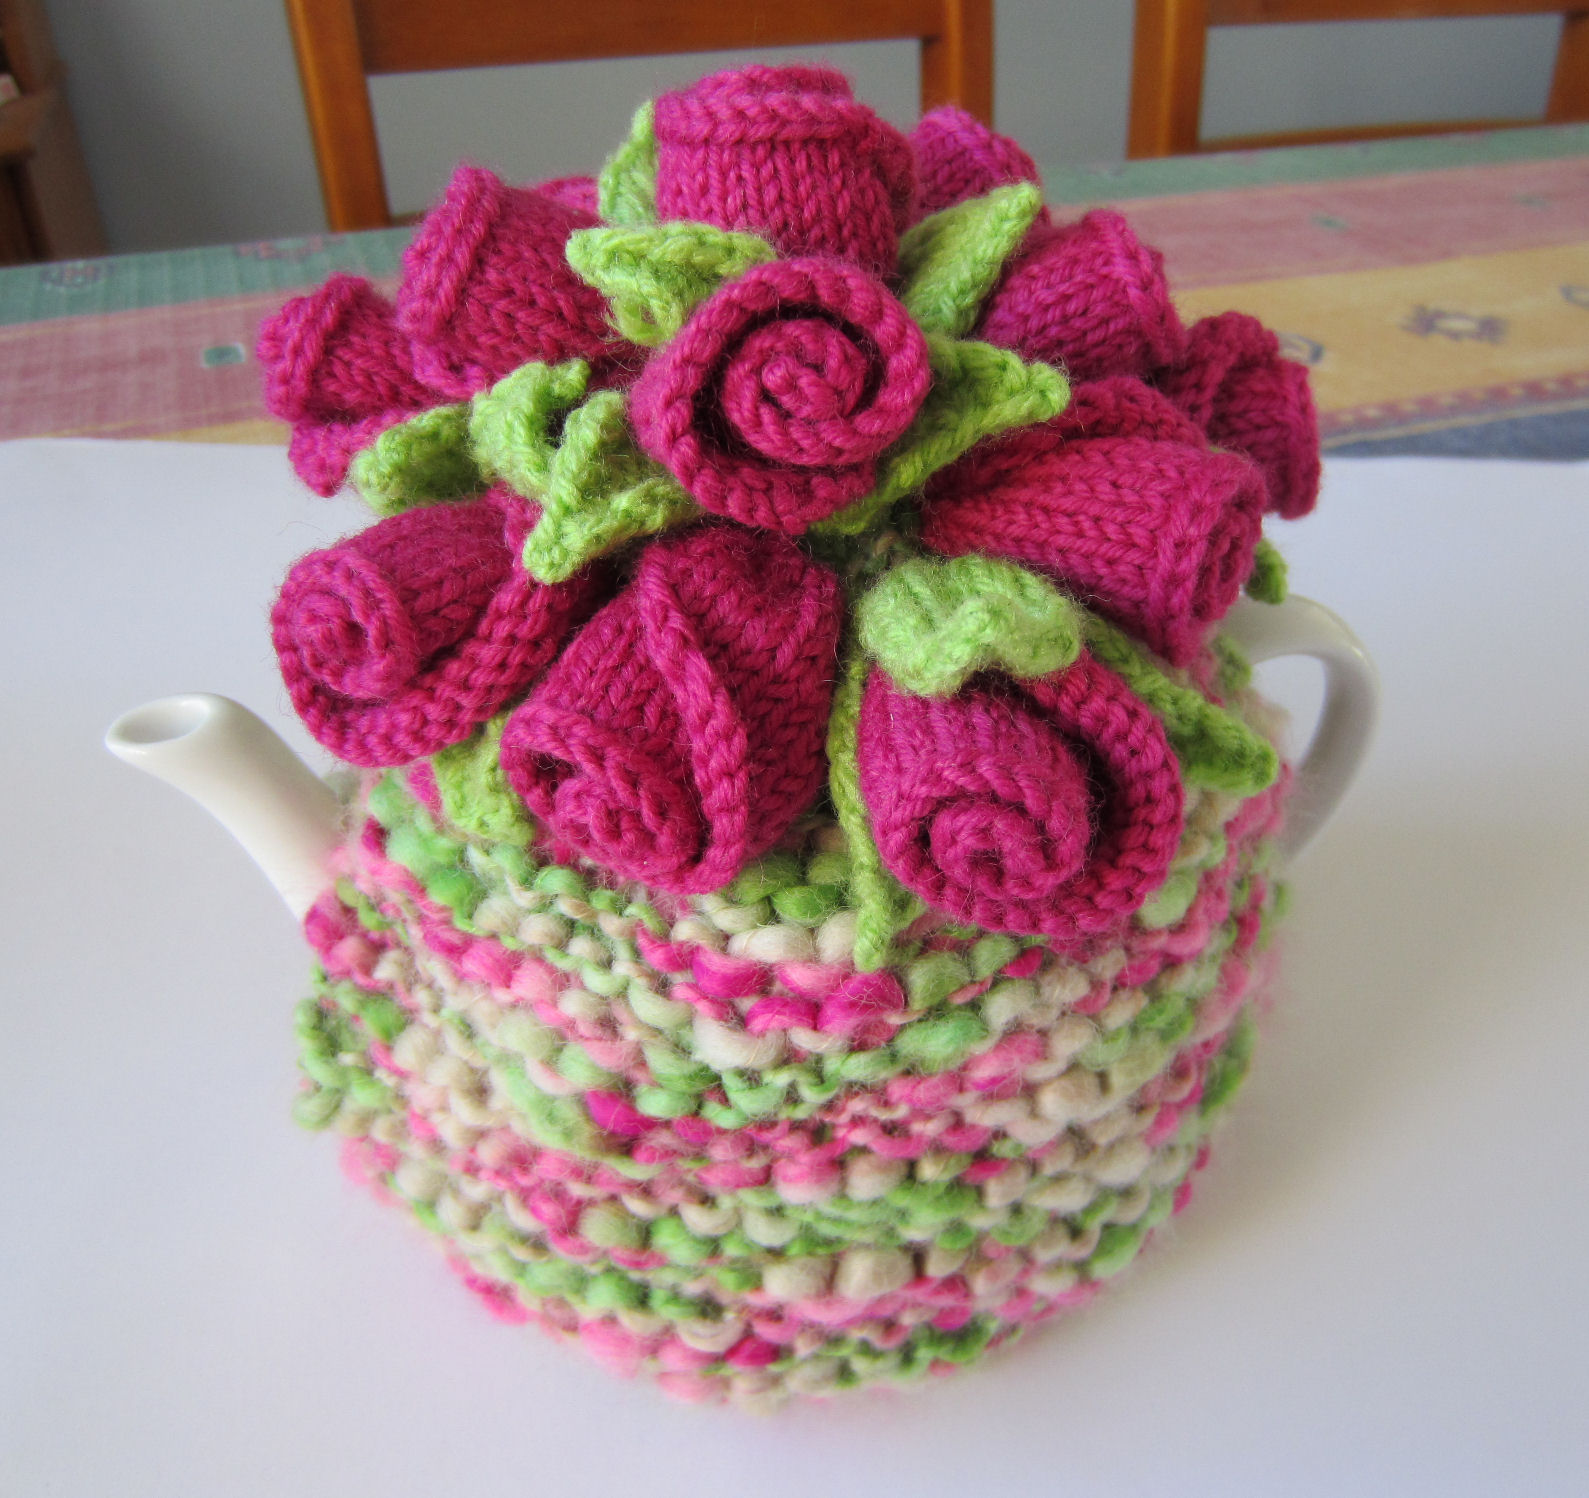 Easy Knitting Pattern For Tea Cosy : 20+ Handmade Tea Cozy with Patterns - Page 2 of 3